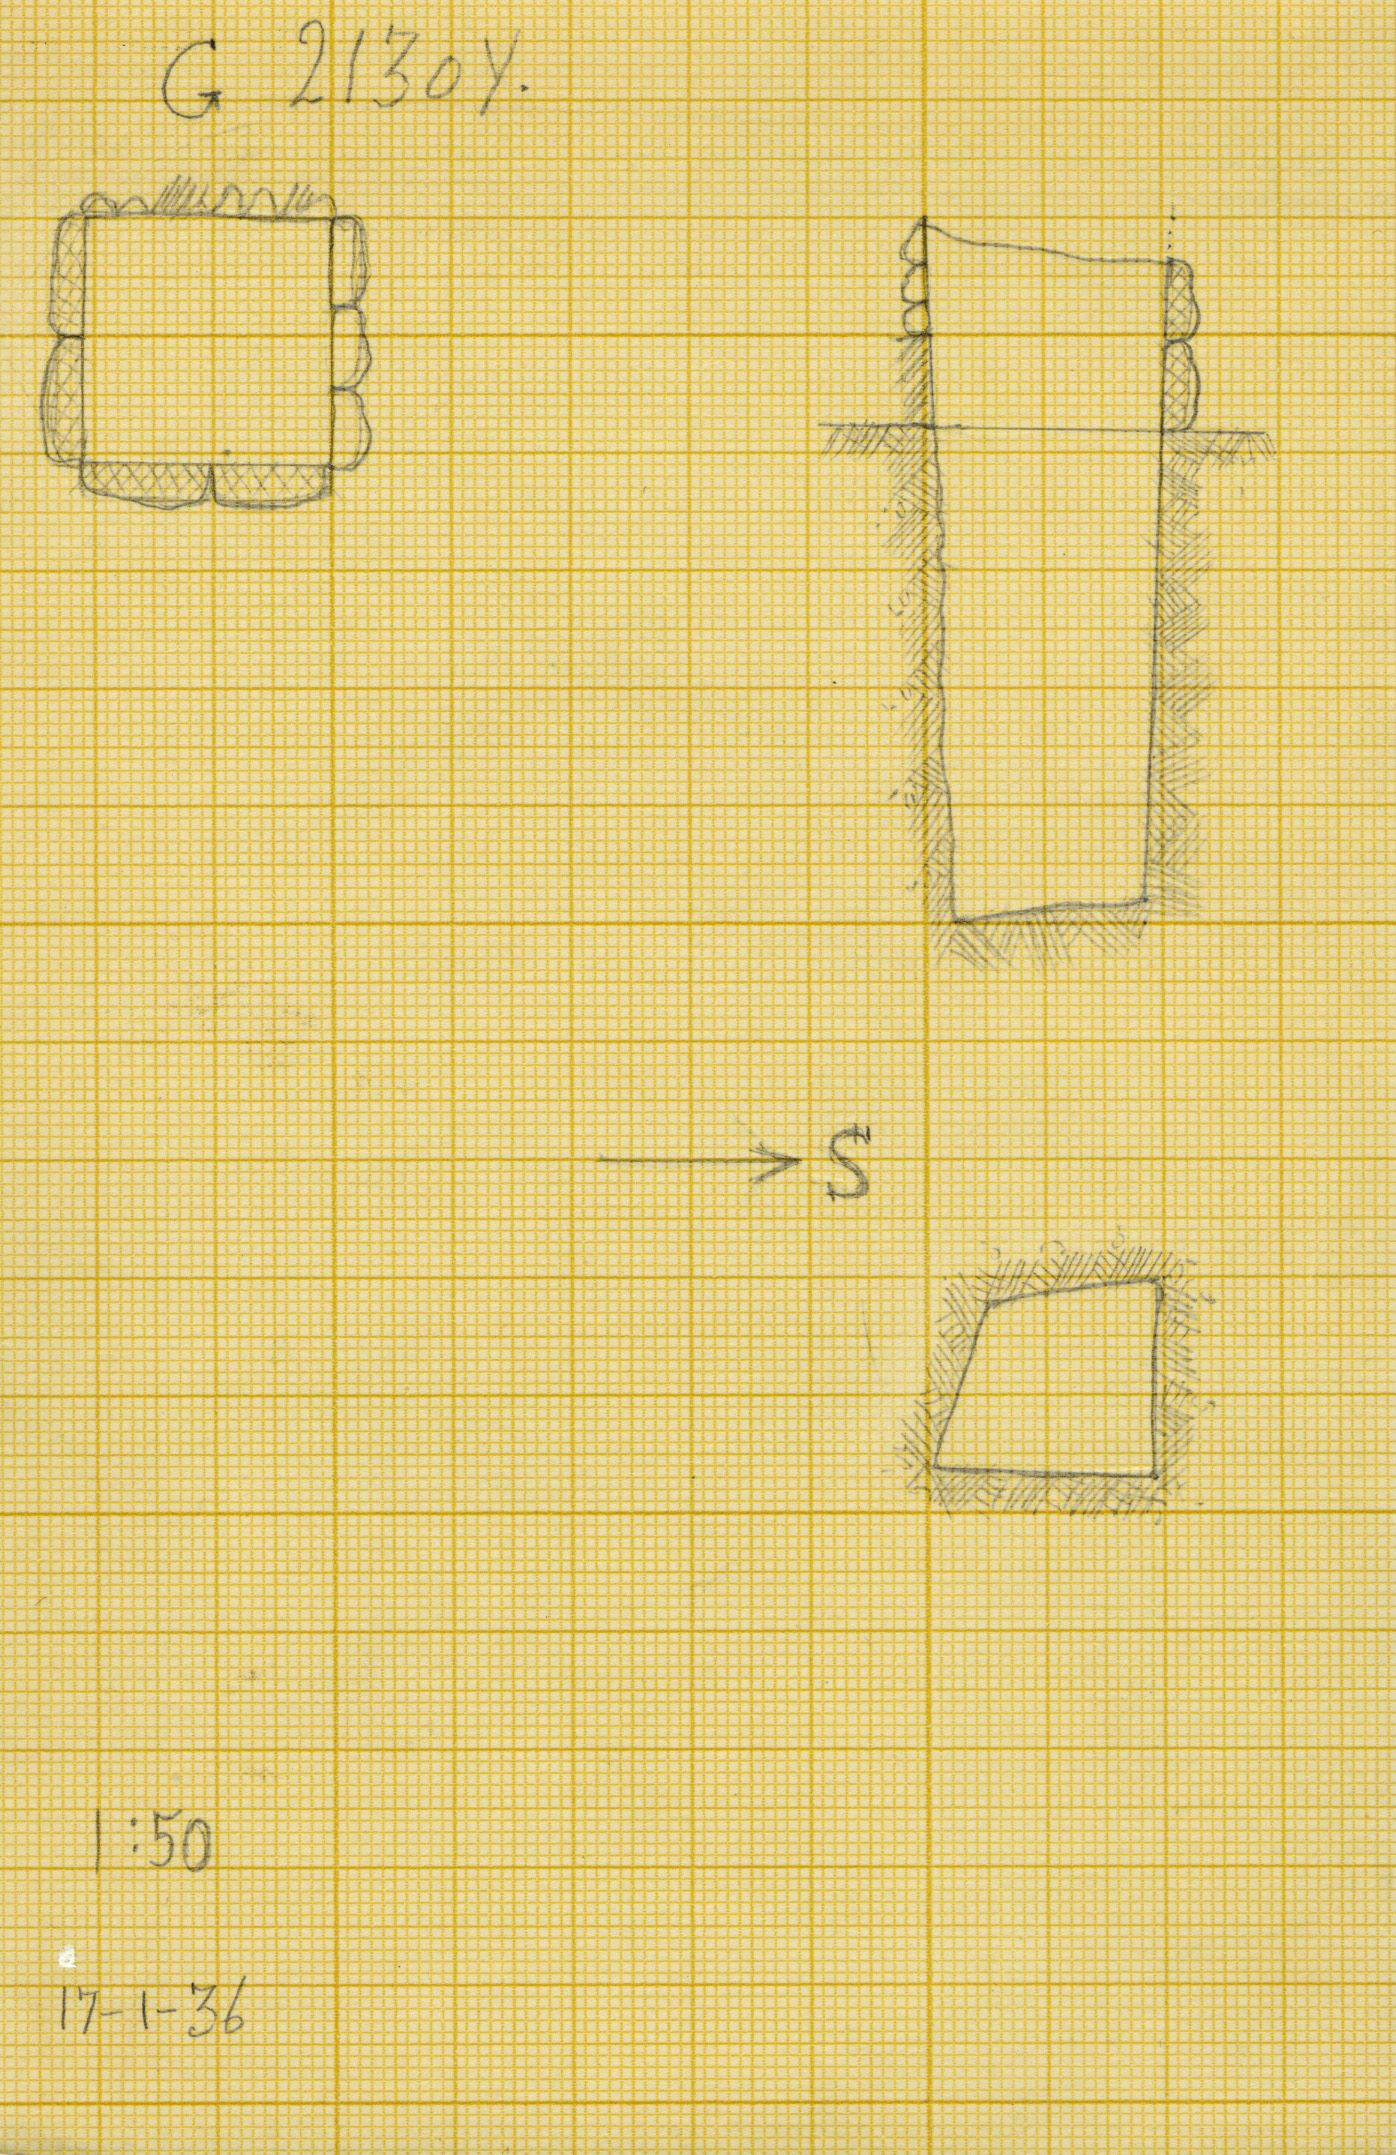 Maps and plans: G 2130, Shaft Y